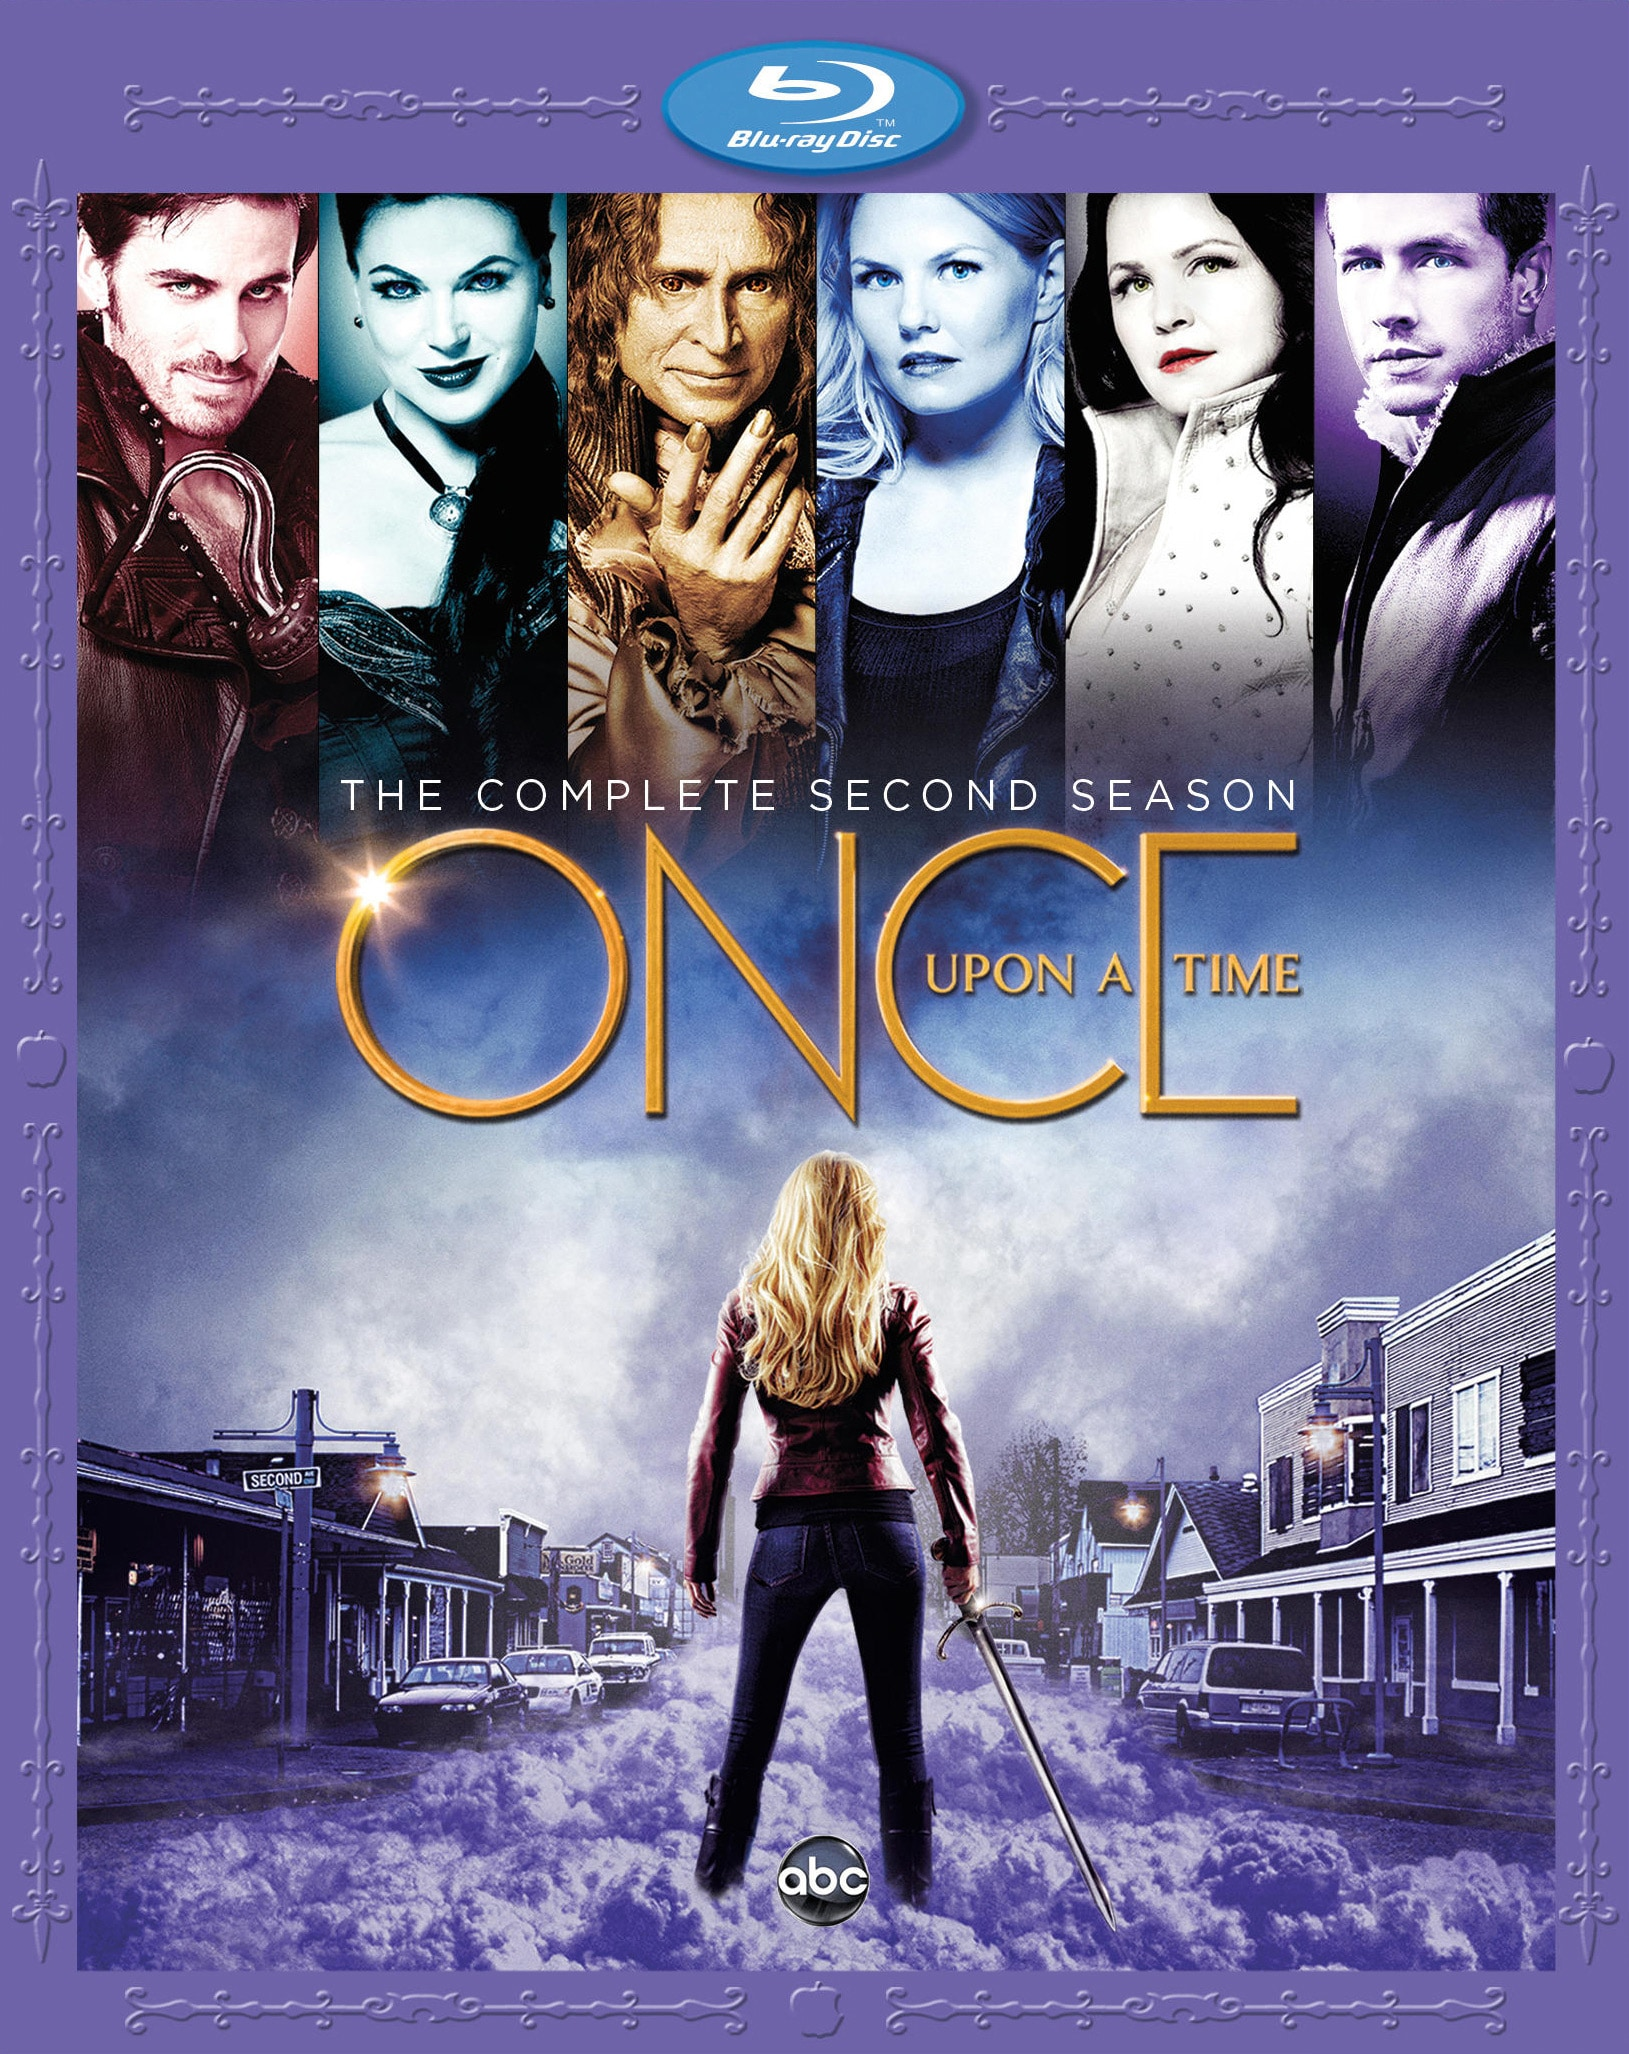 Once Upon A Time: The Complete Second Season (Blu-ray Disc)